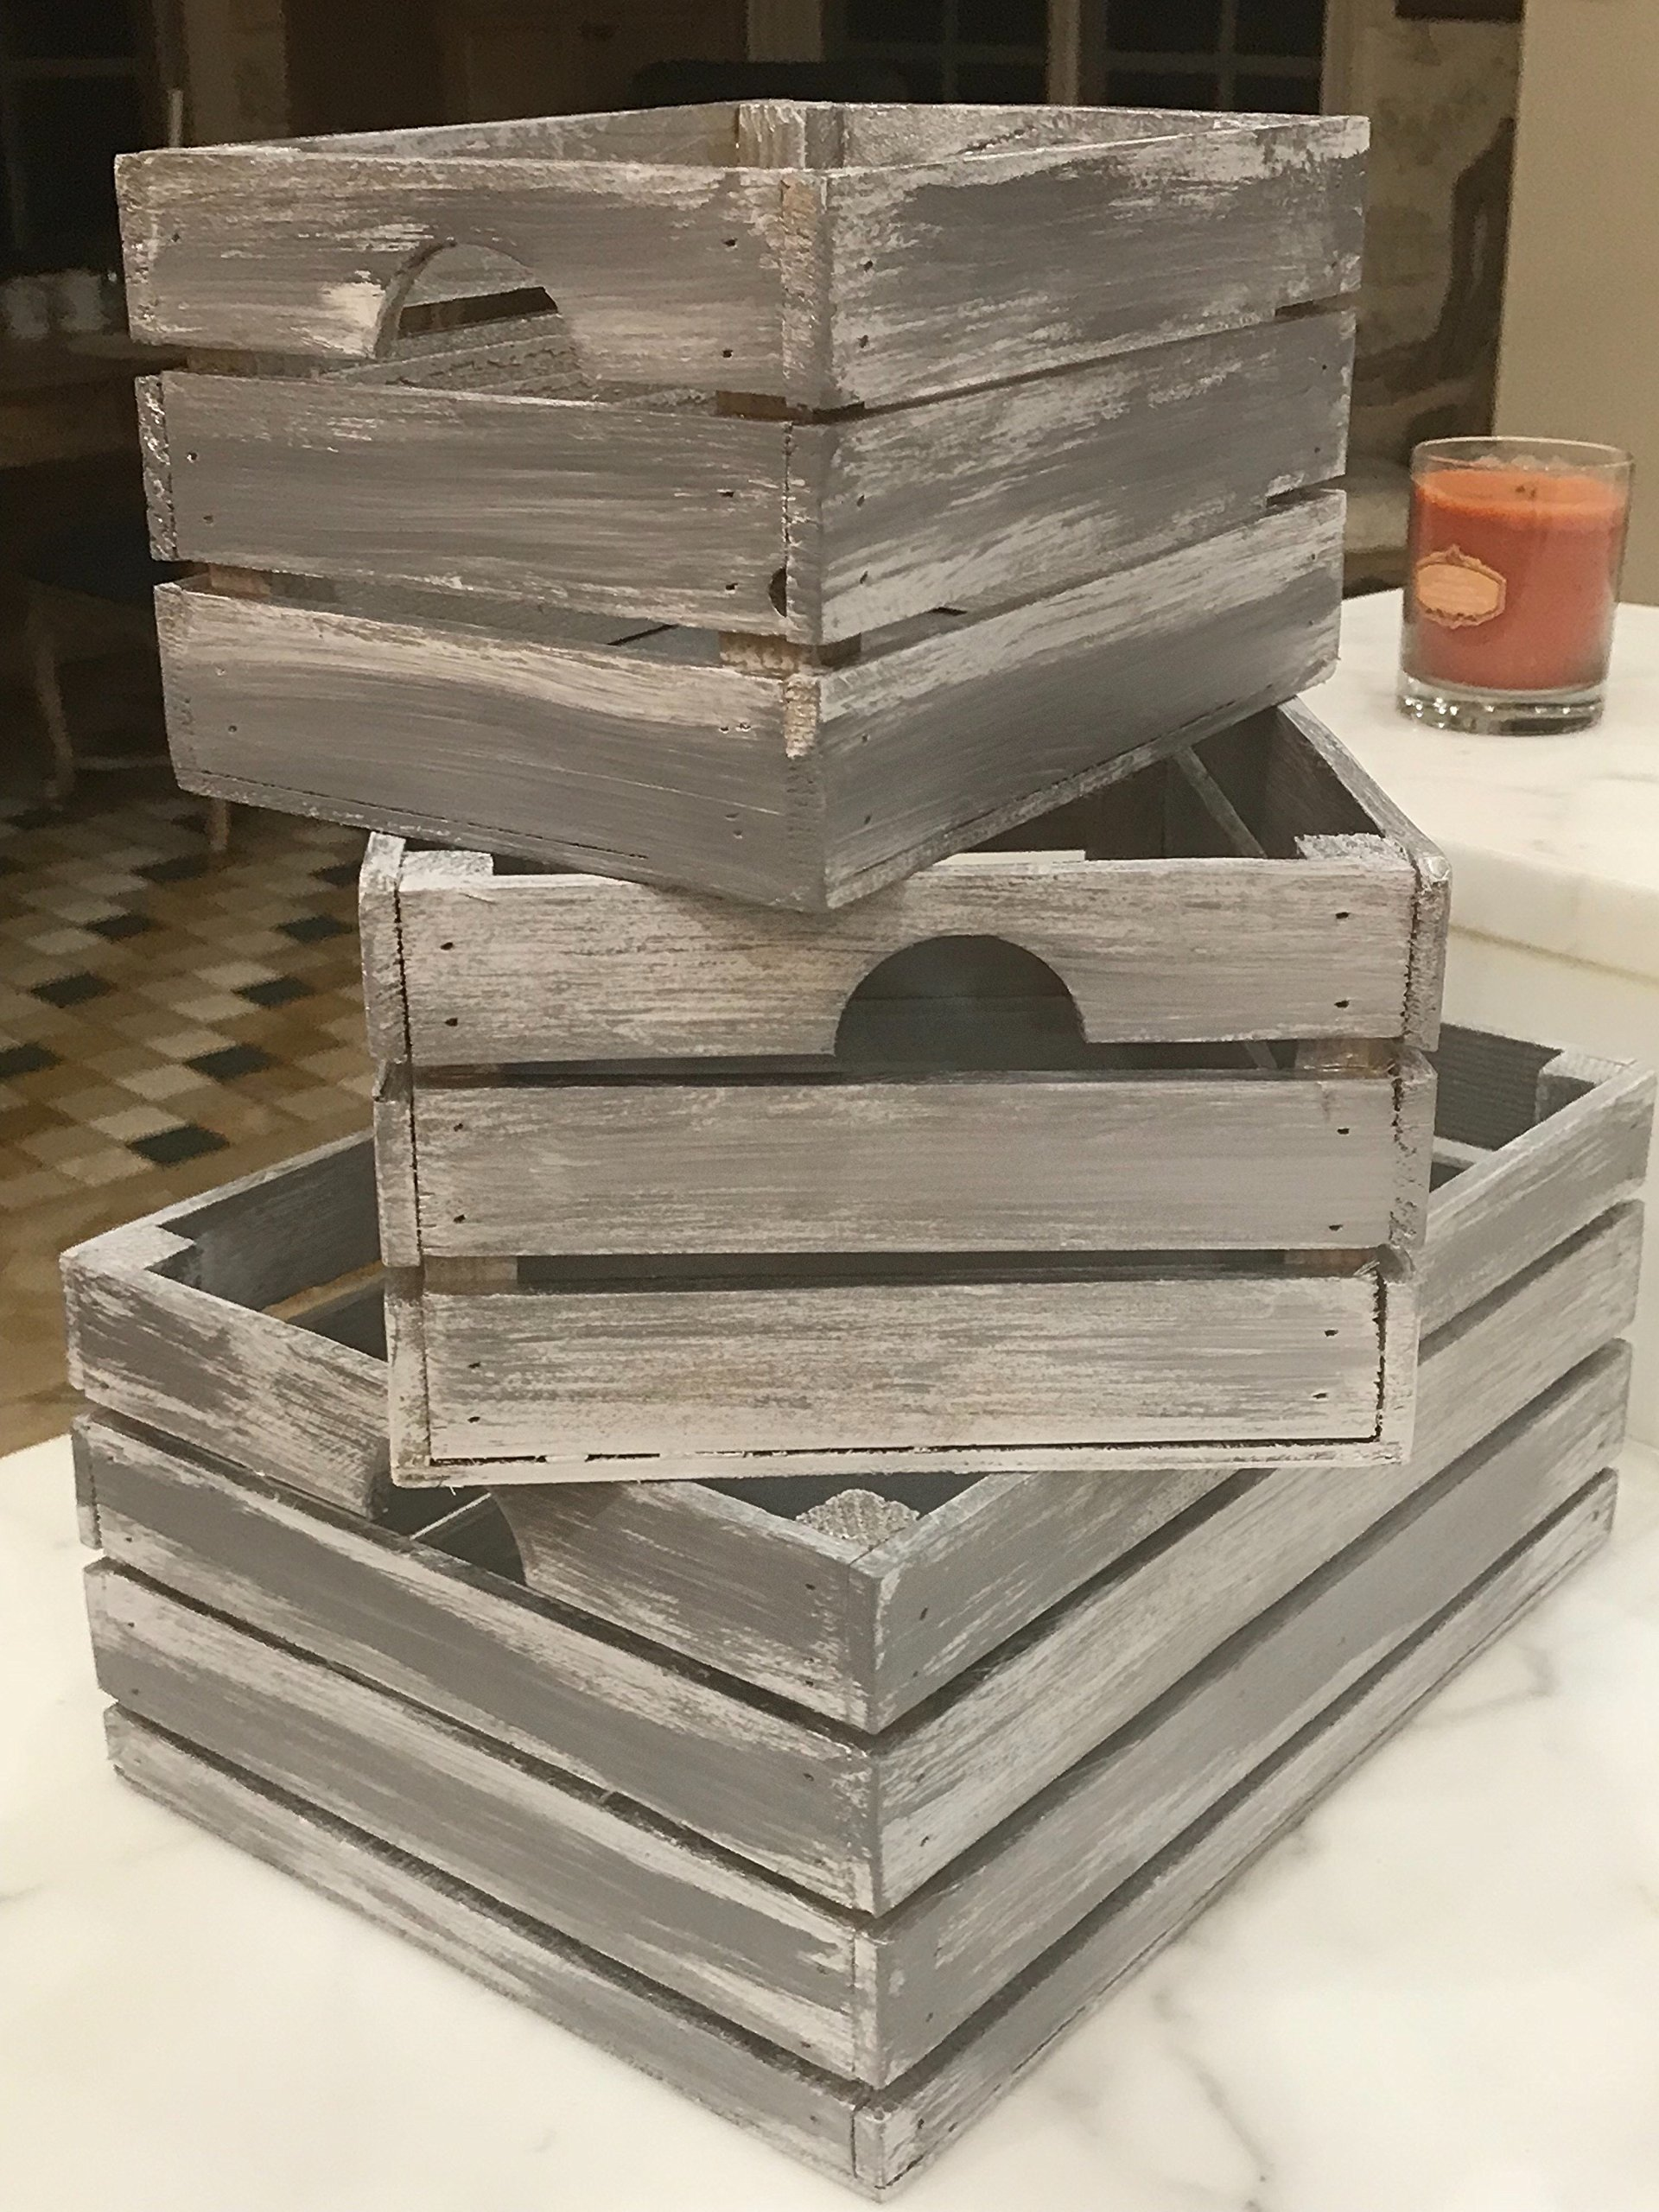 Winship Stake and Lath, Inc. Rustic Decorative Wood Crates (Set of 3) - Cottage Grey Distressed by Winship Stake and Lath, Inc. (Image #4)